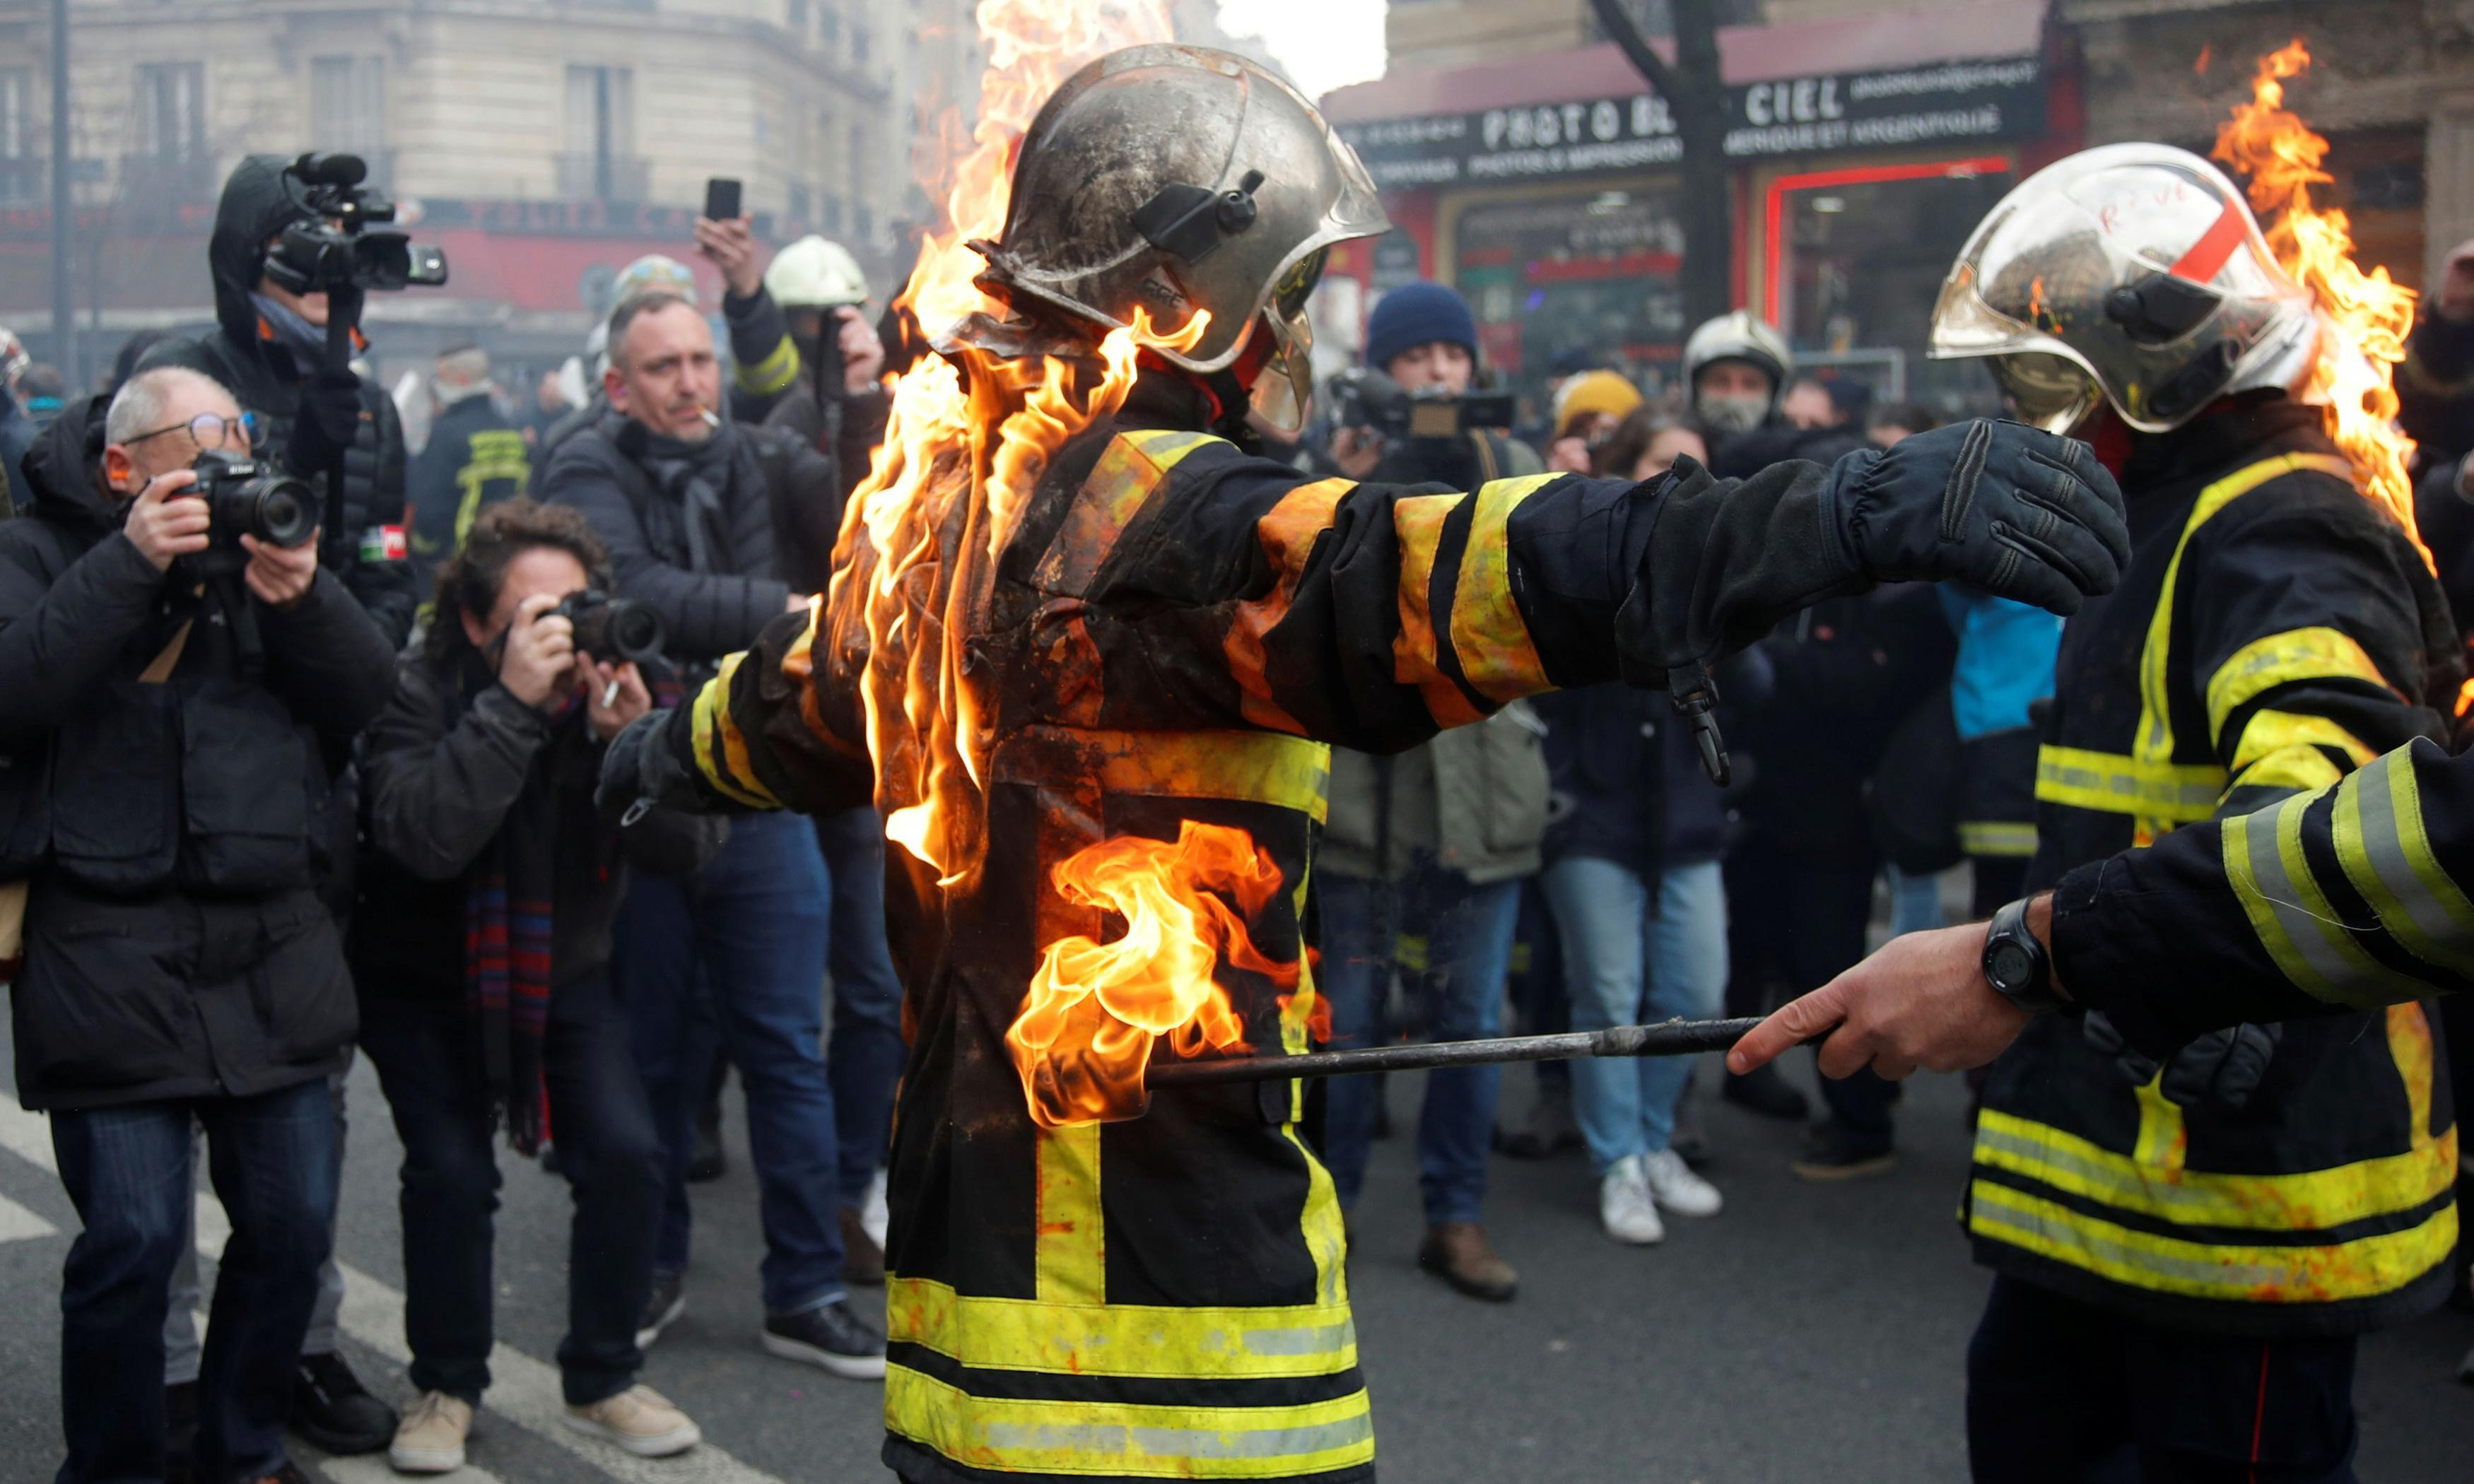 French police clash with firefighters during Paris protest